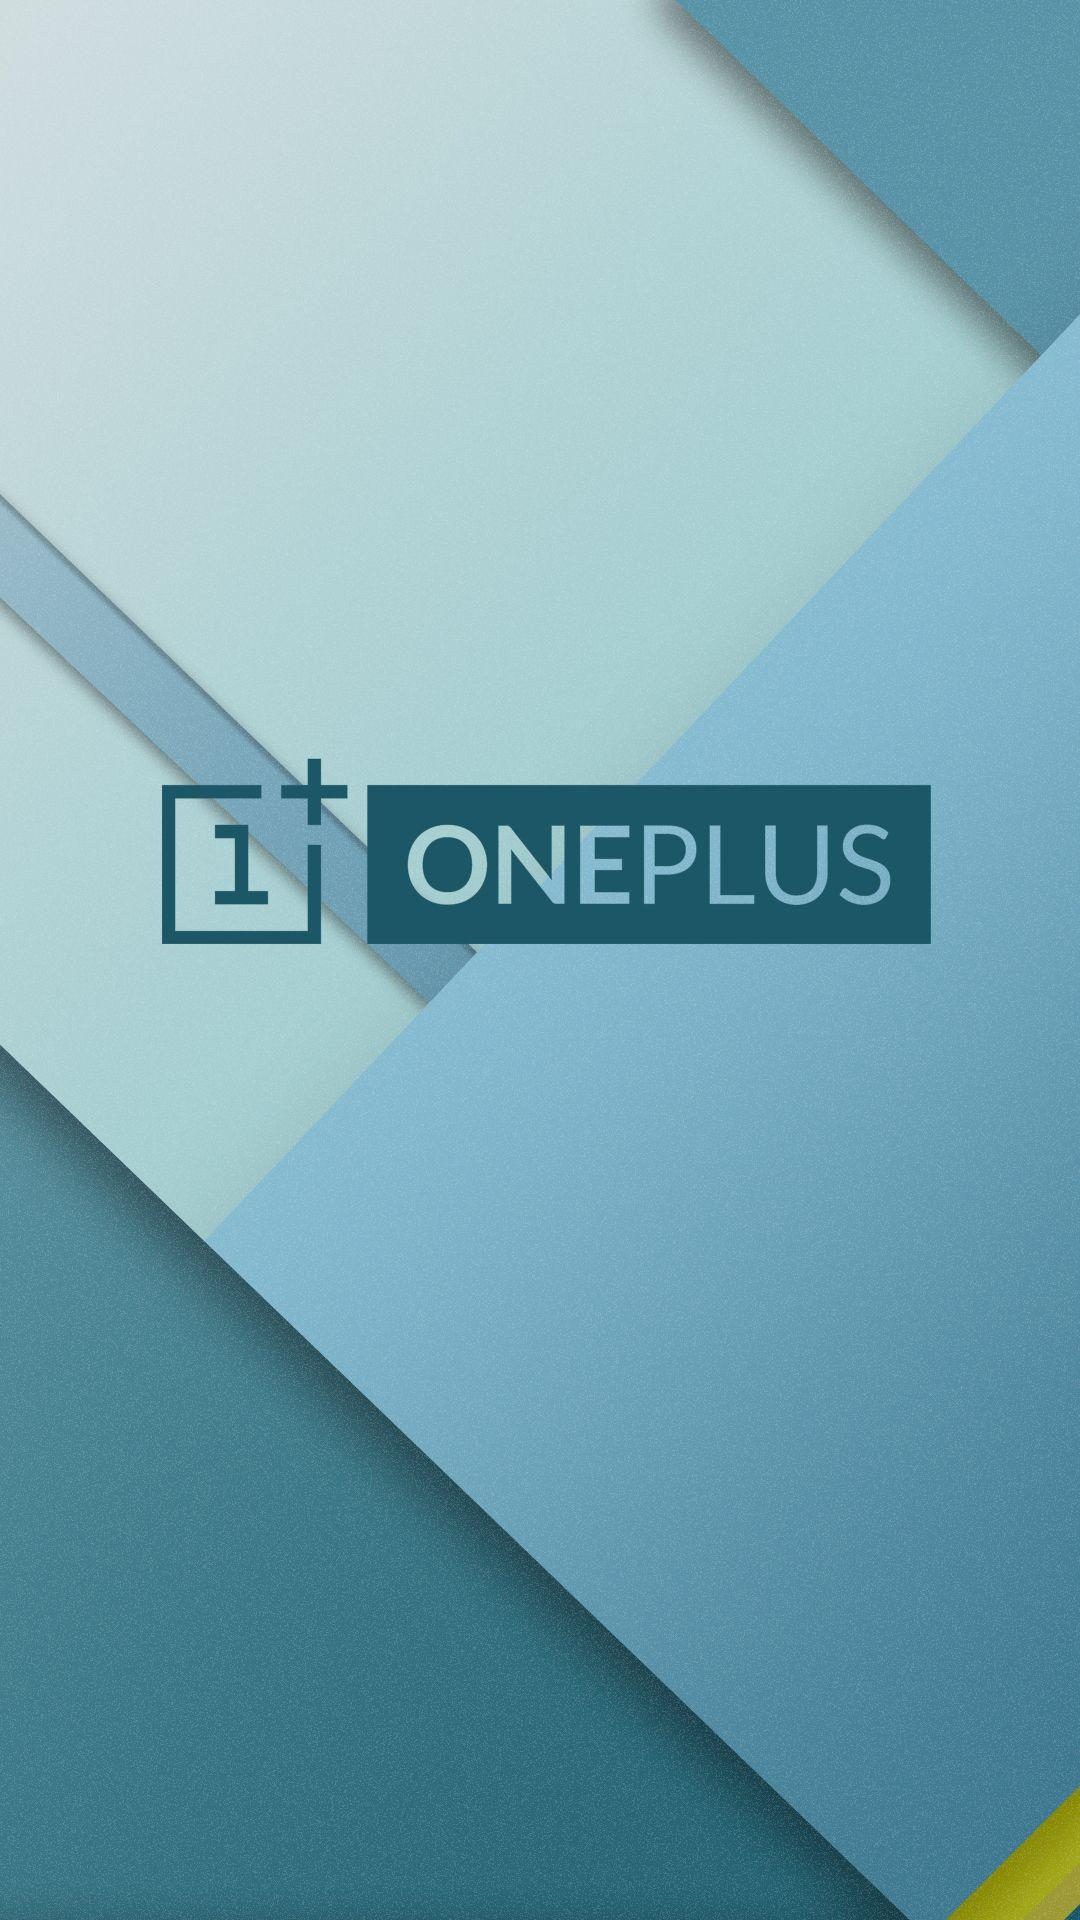 ONEPLUS material design wallpapers